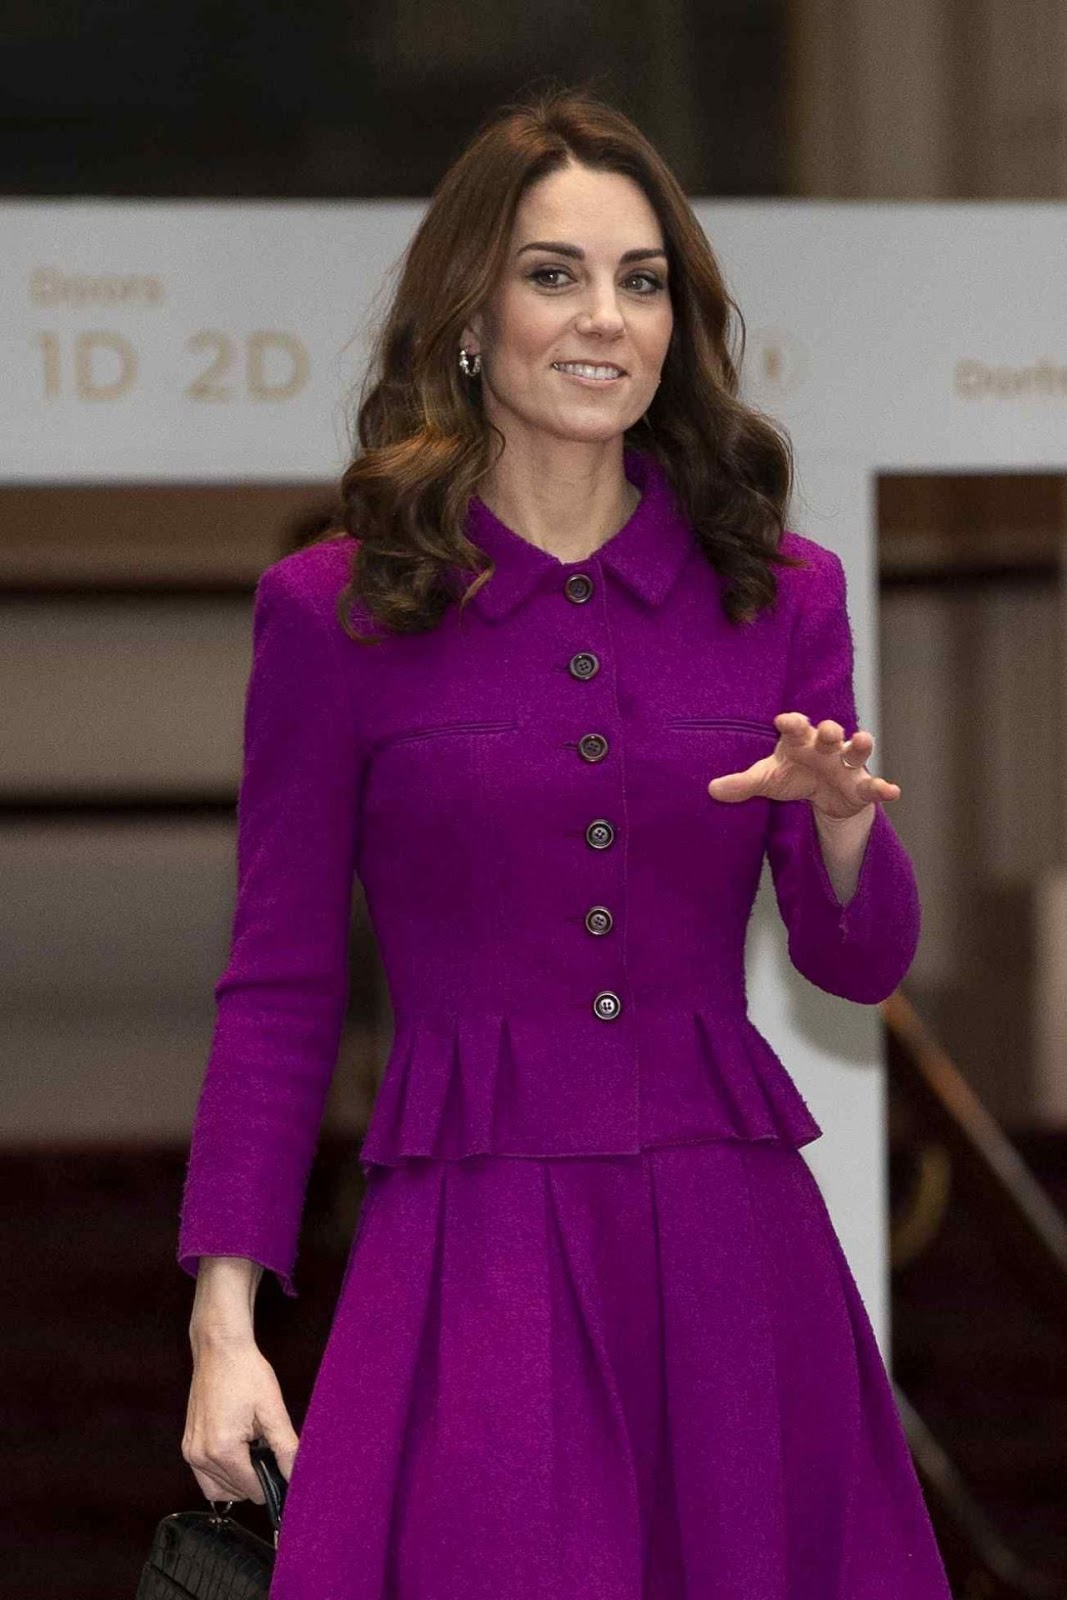 Kate Middleton In Purple Dress At Royal Opera House In